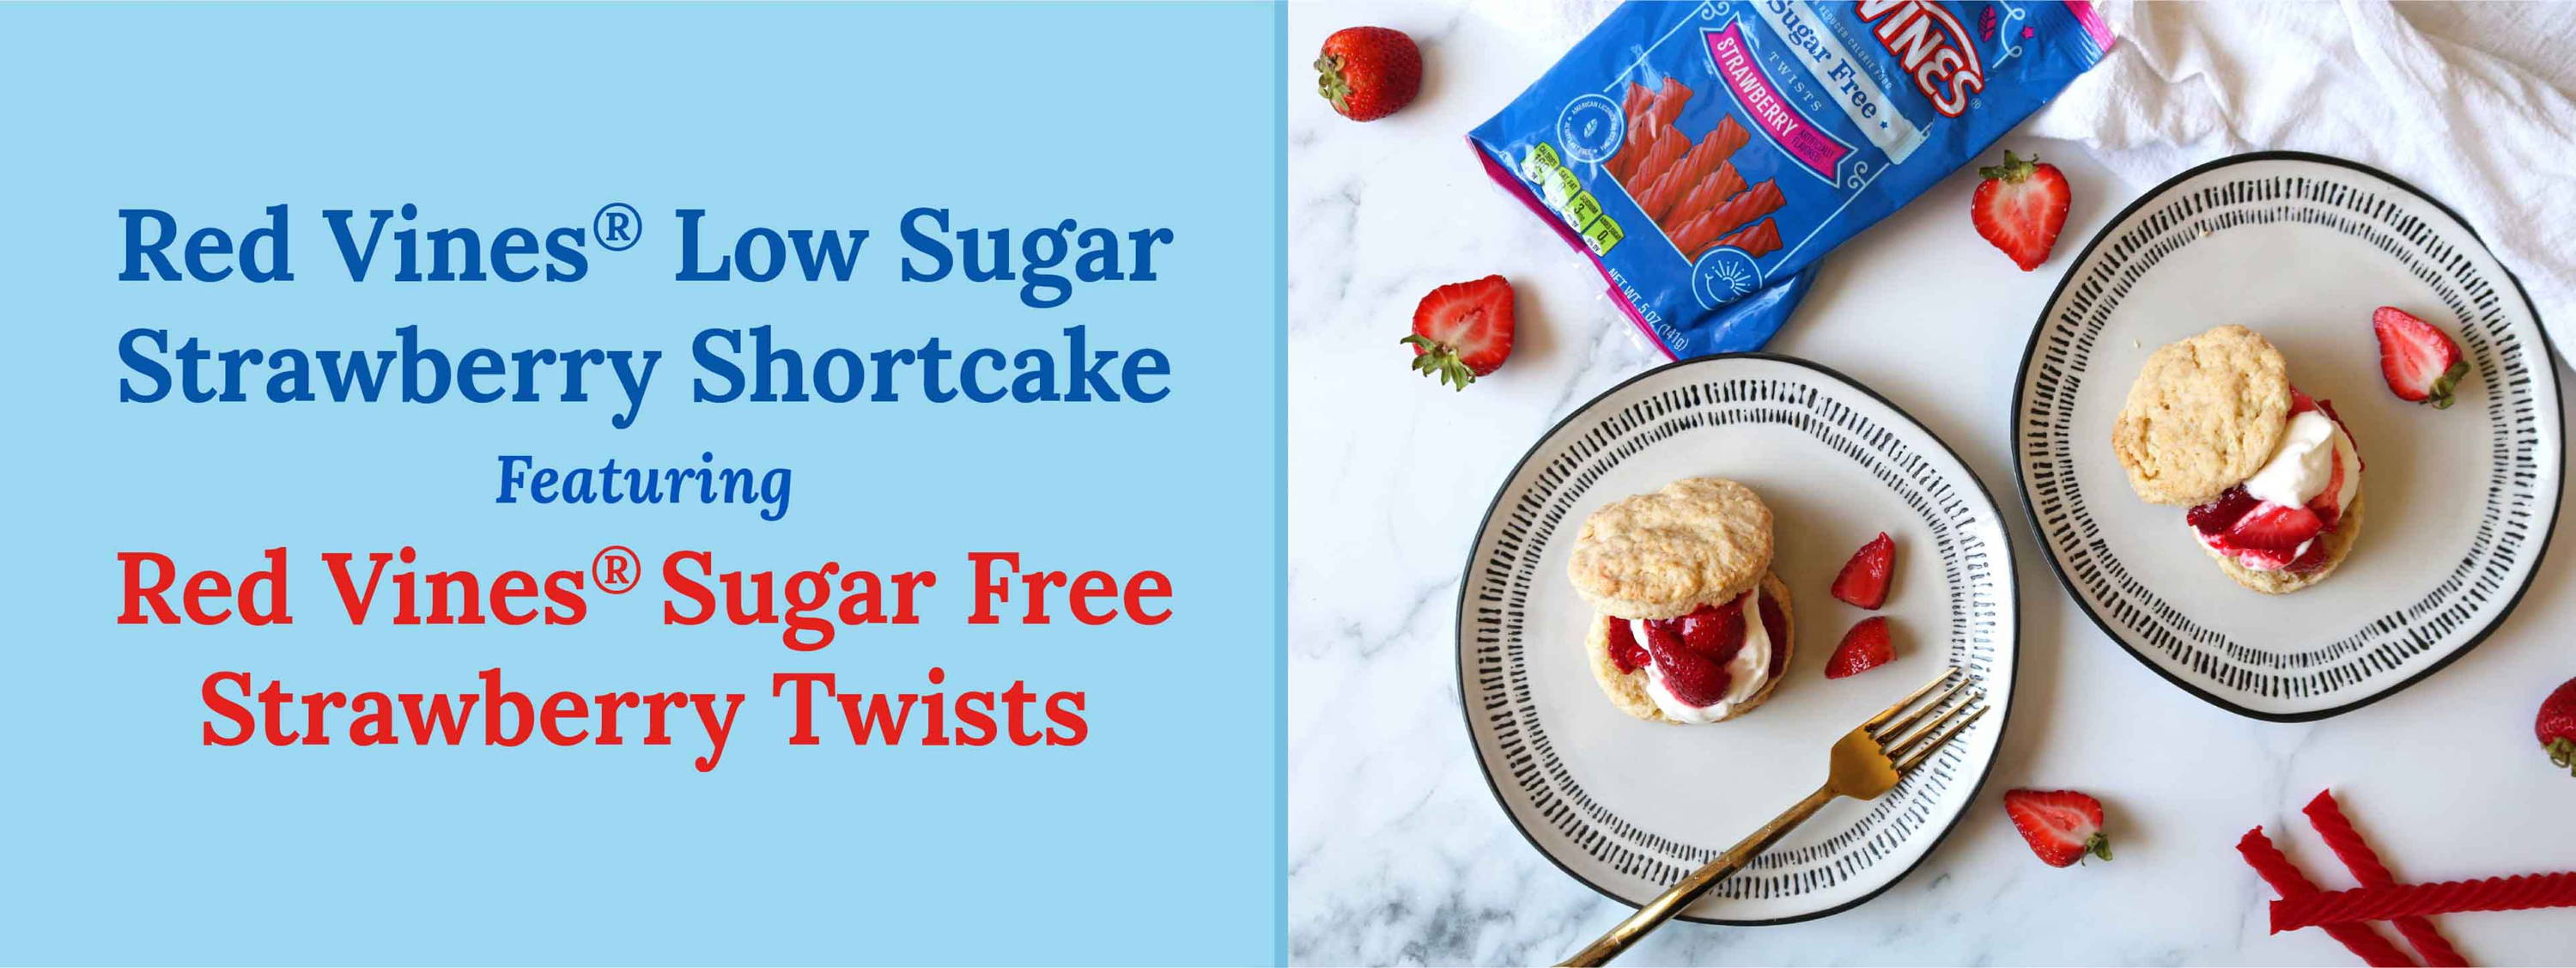 Red Vines Low Sugar Strawberry Shortcake featuring Sugar Free Strawberry Twists